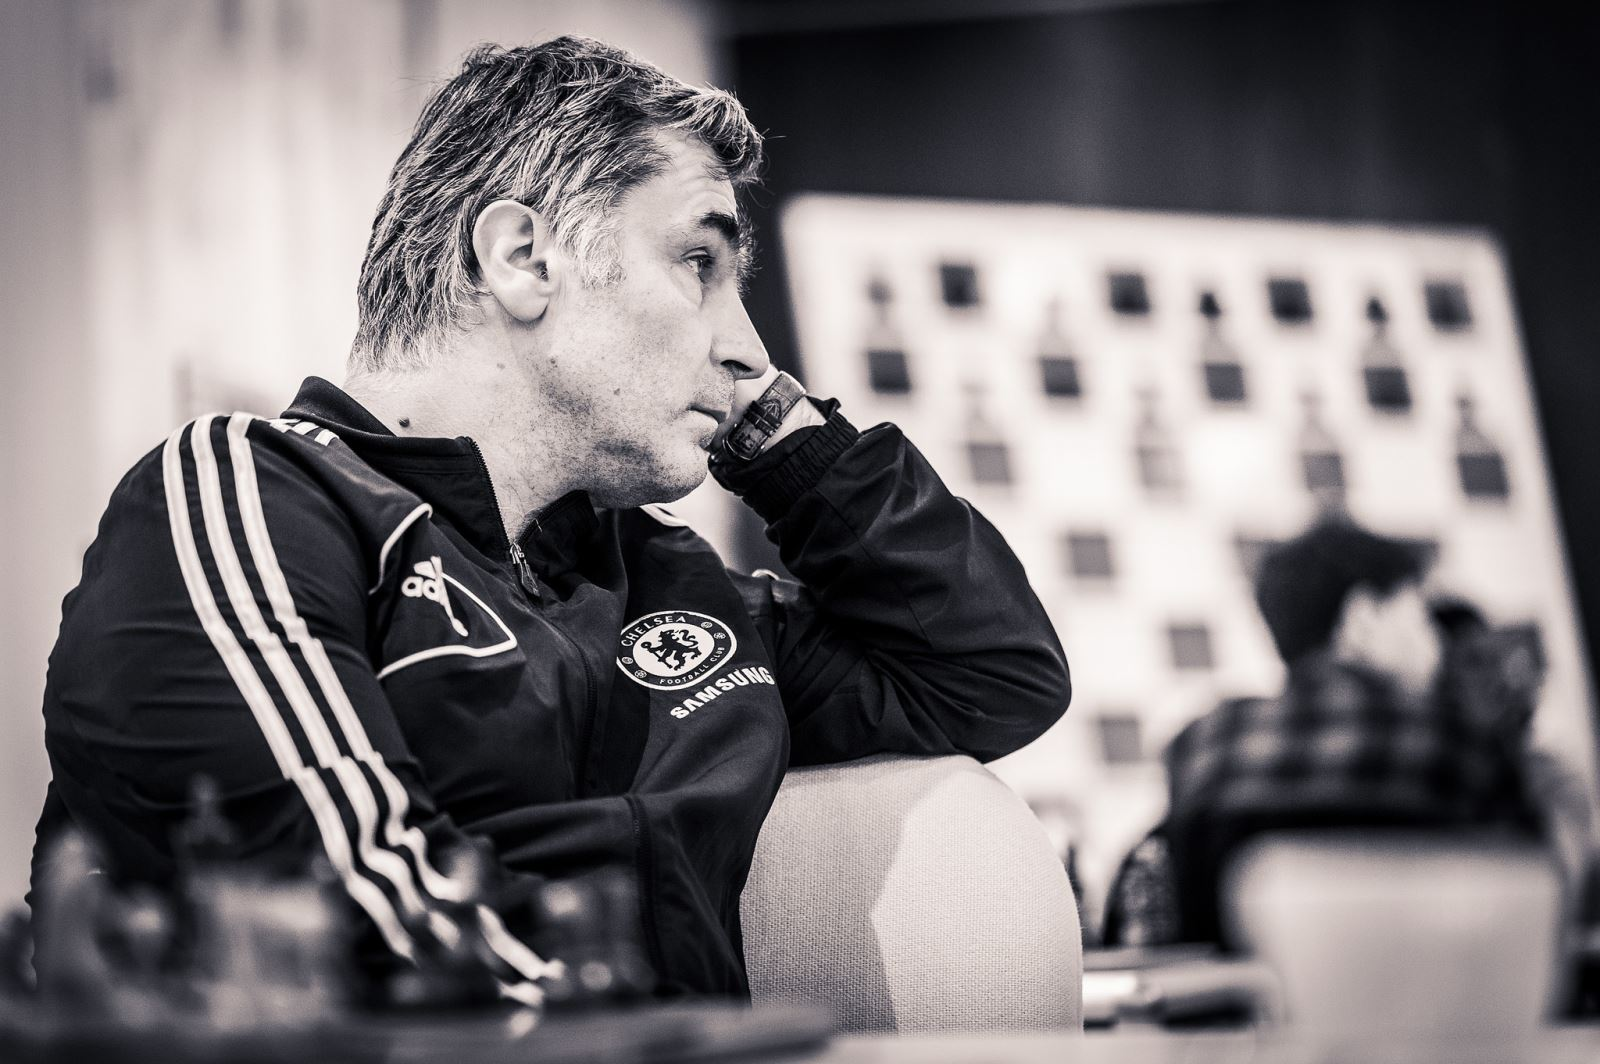 Vassiy Ivanchuk during his fourth round game against Wei Yi